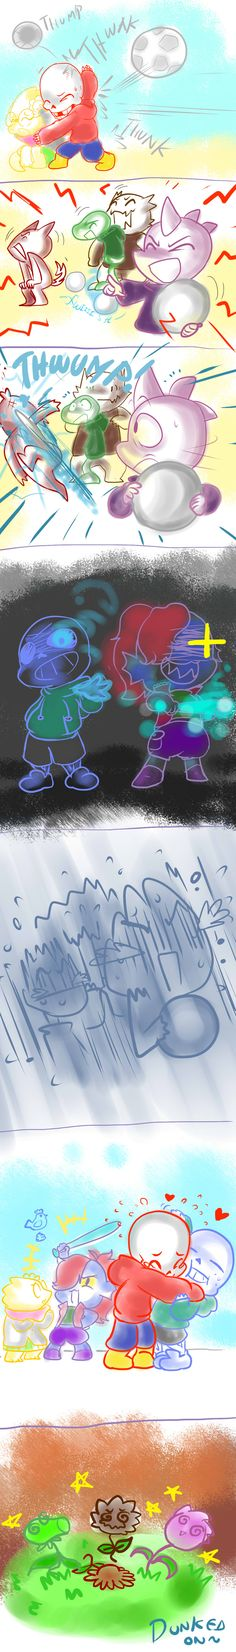 LittleTale: Play nice OR ELSE.... by perfectshadow06 on DeviantArt